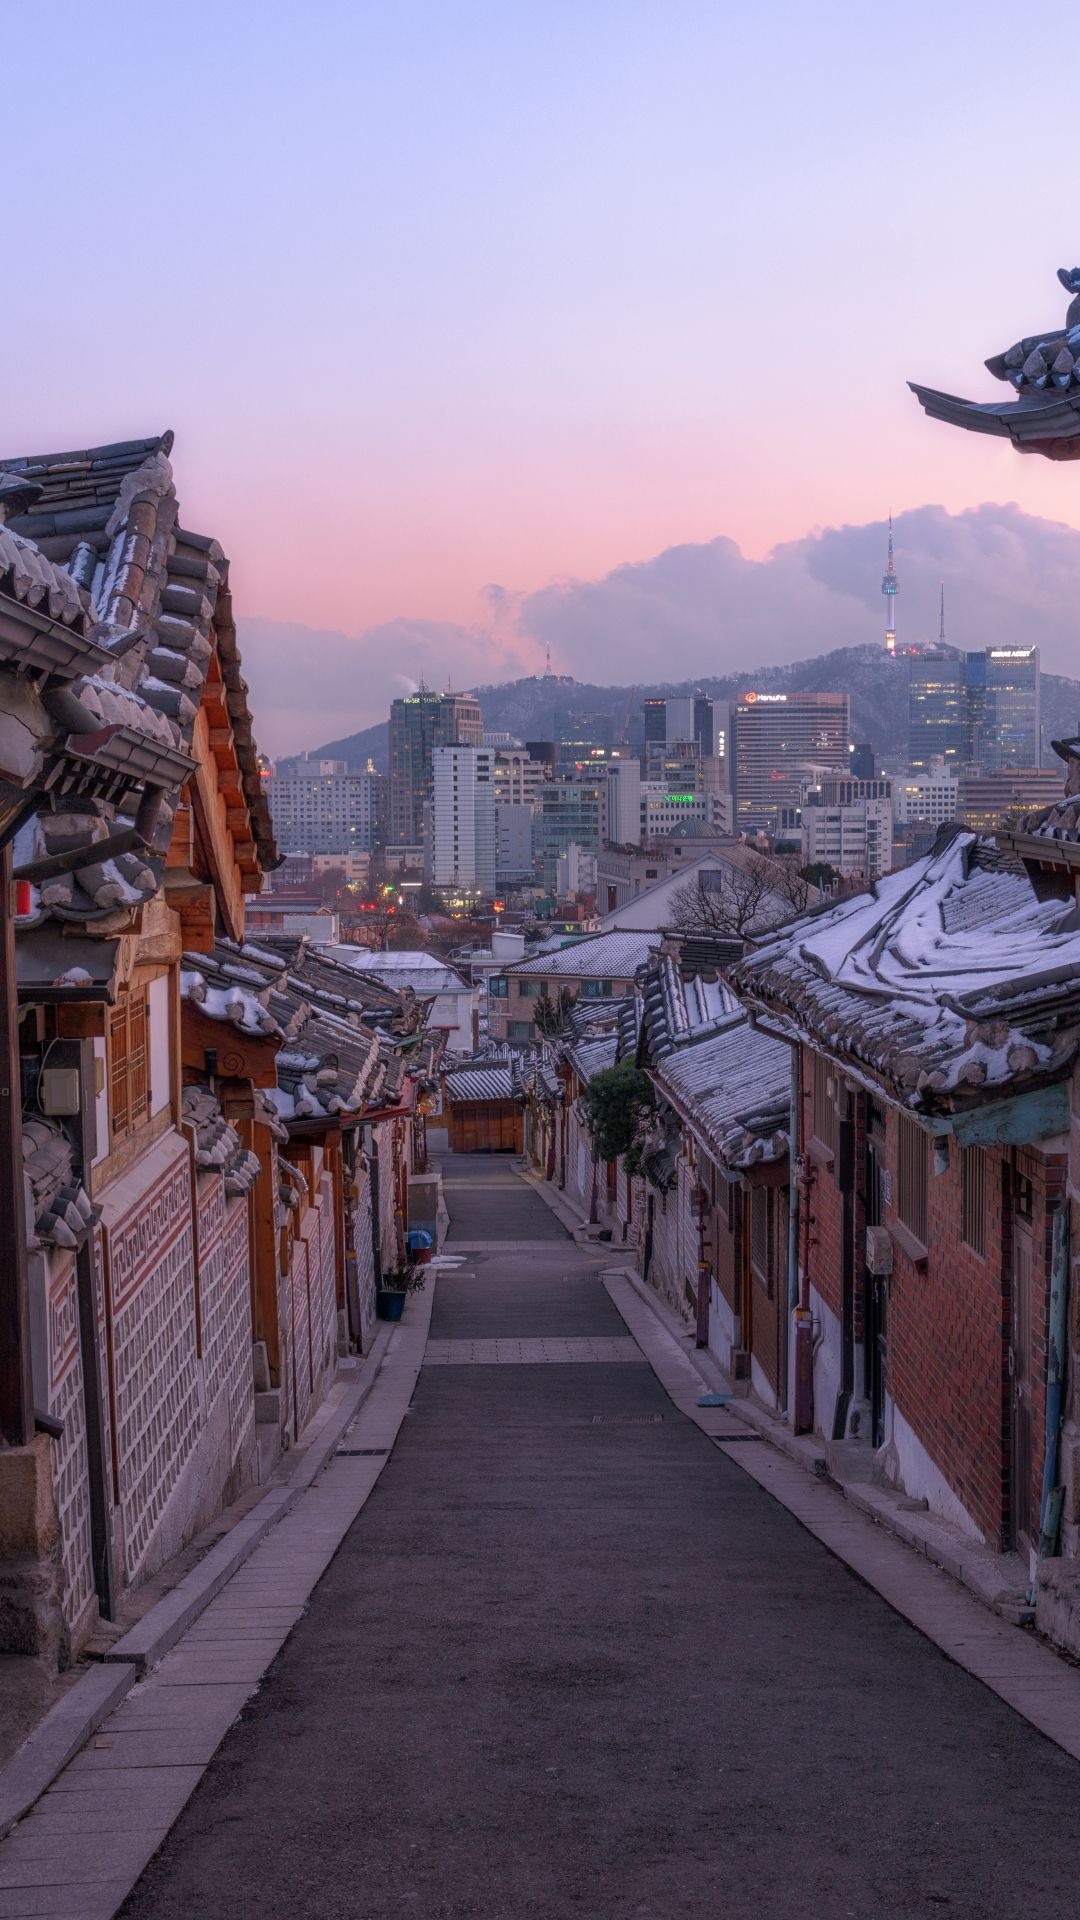 Seoul Aesthetic Wallpapers Top Free Seoul Aesthetic Backgrounds Wallpaperaccess